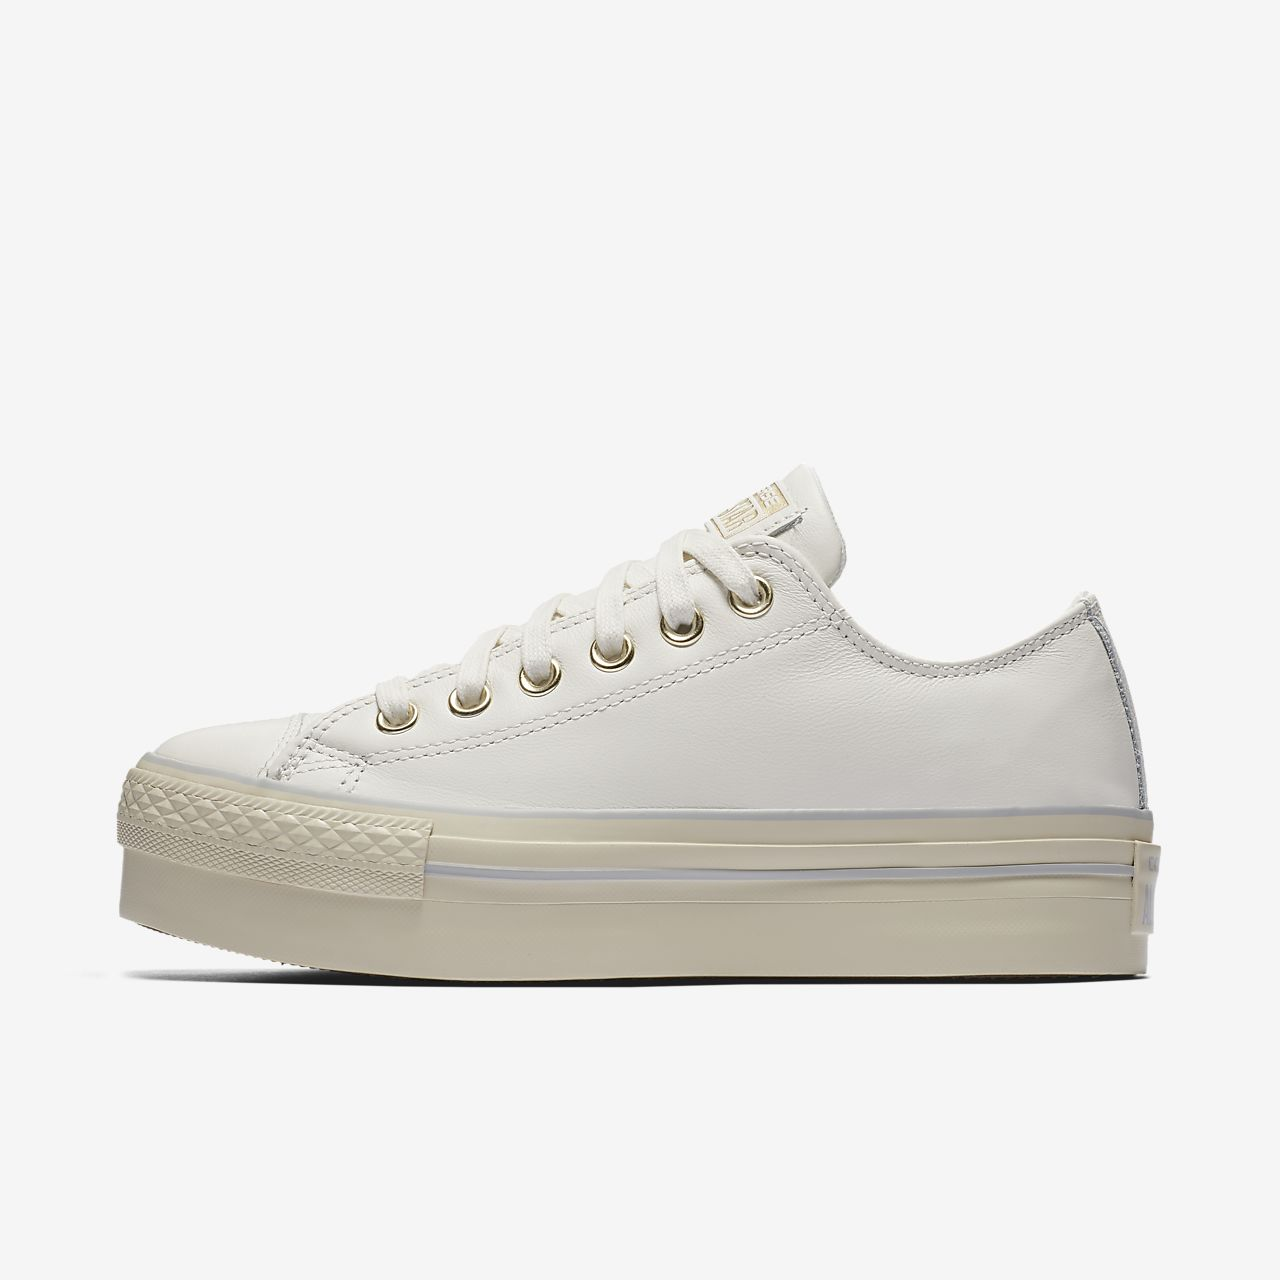 converse all star leather. converse chuck taylor all star leather platform low top women\u0027s shoe